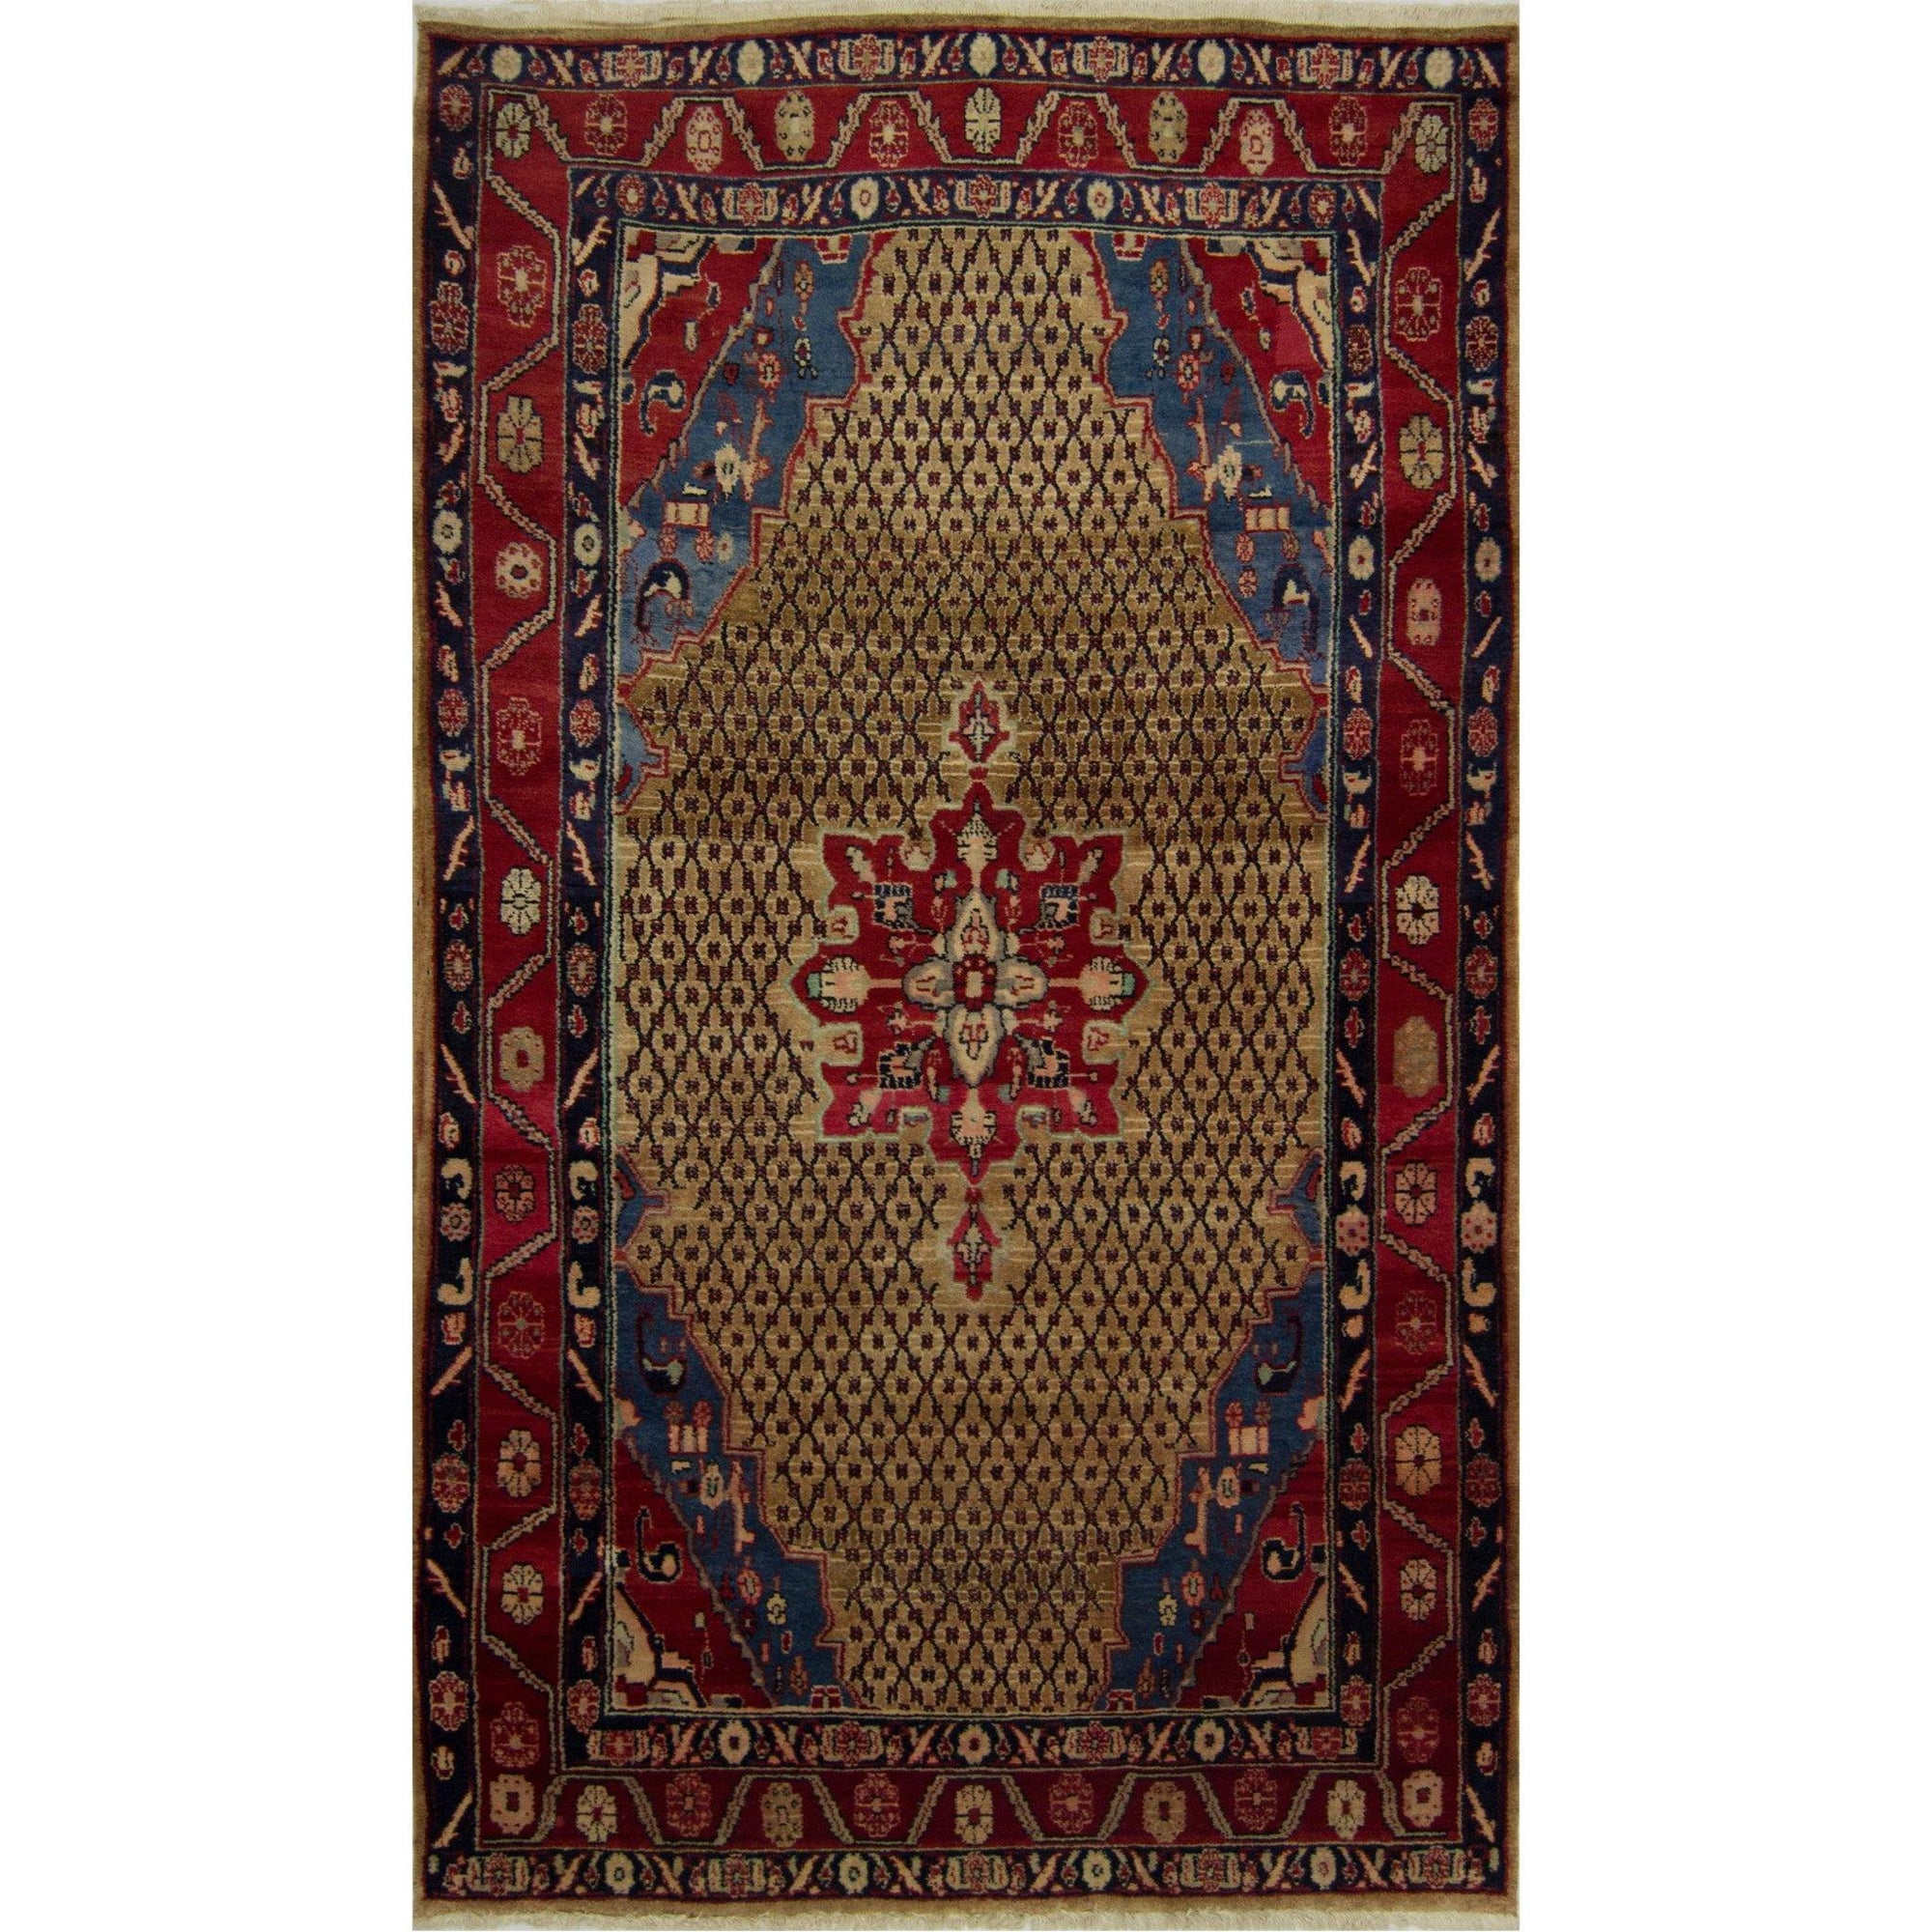 Tribal Hand-knotted Persian Wool Bijar Rug 150 cm x 270 cm Persian-Rug | House-of-Haghi | NewMarket | Auckland | NZ | Handmade Persian Rugs | Hand Knotted Persian Rugs